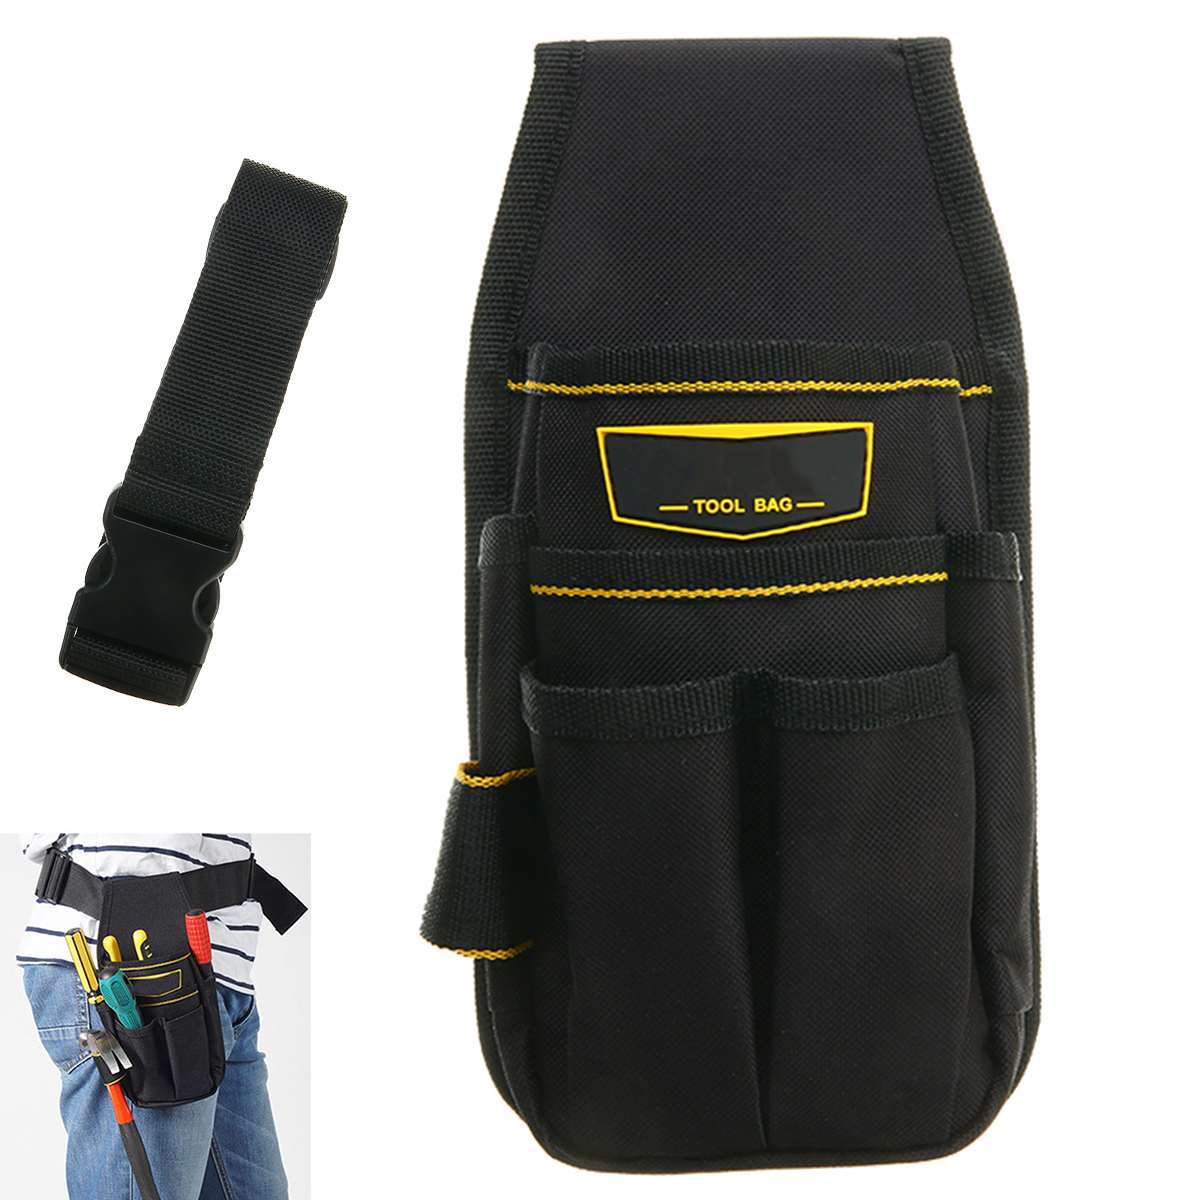 New Electrician Tool Bag Waist Pocket Pouch Belt Tool Storage Holder Maintenance Tools Screwdriver Pliers Storage Bag rewin wb 9025 handy 2 pocket 5 holder water resistant dacron waist tool bag black yellow